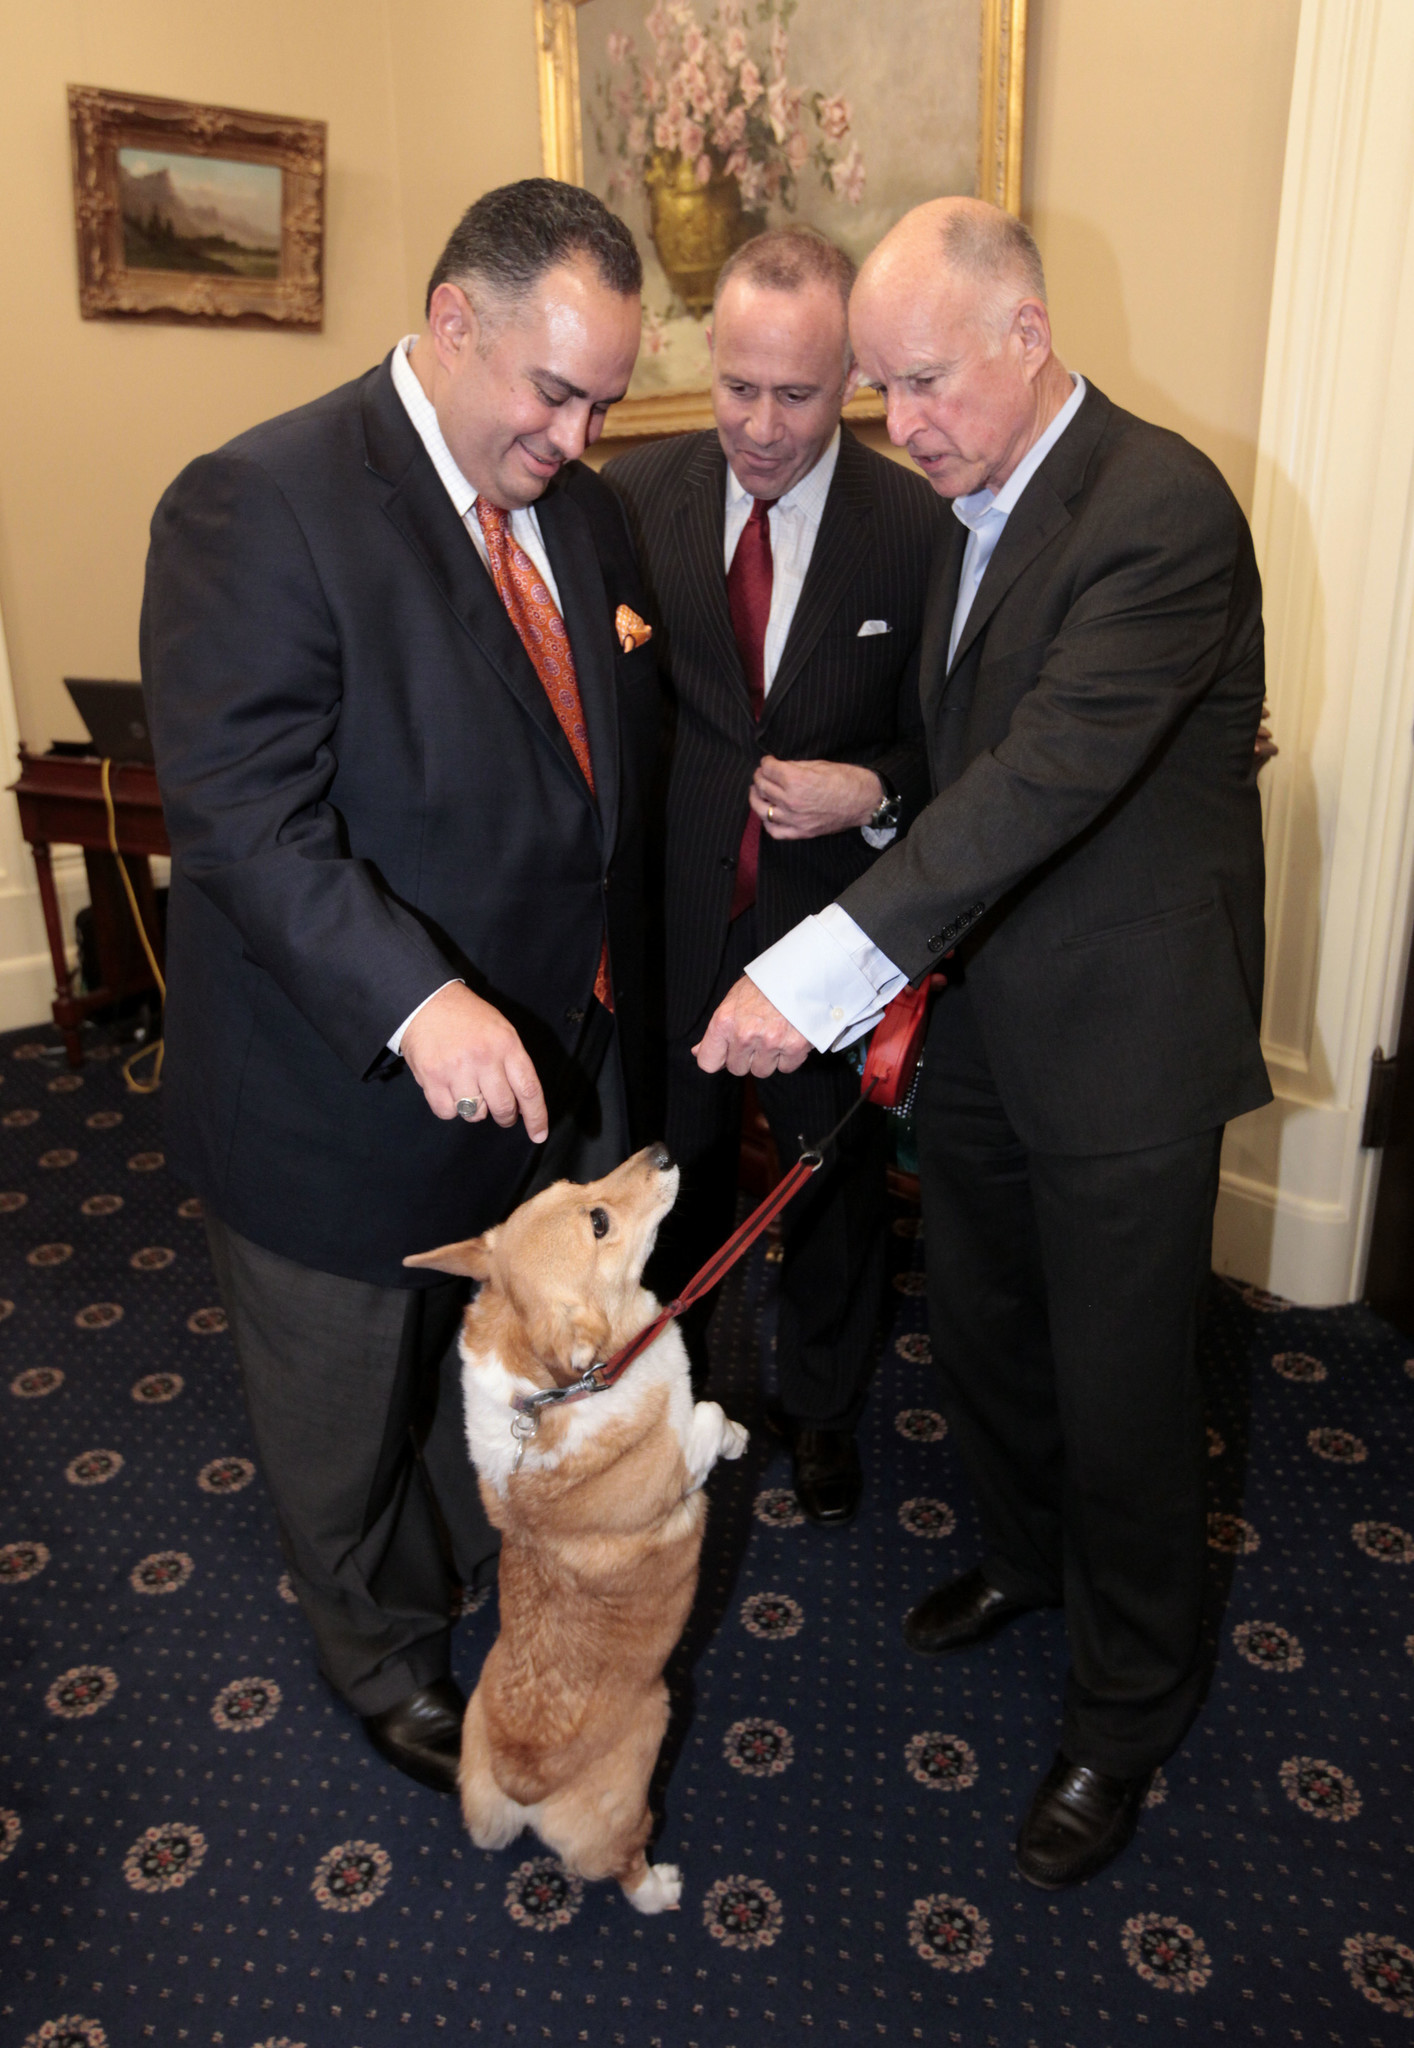 Gov. Jerry Brown, right, shows off Sutter during a 2012 meeting with Assembly Speaker John Perez (D-Los Angeles), left, and Senate President Pro Tem Darrell Steinberg (D-Sacramento).